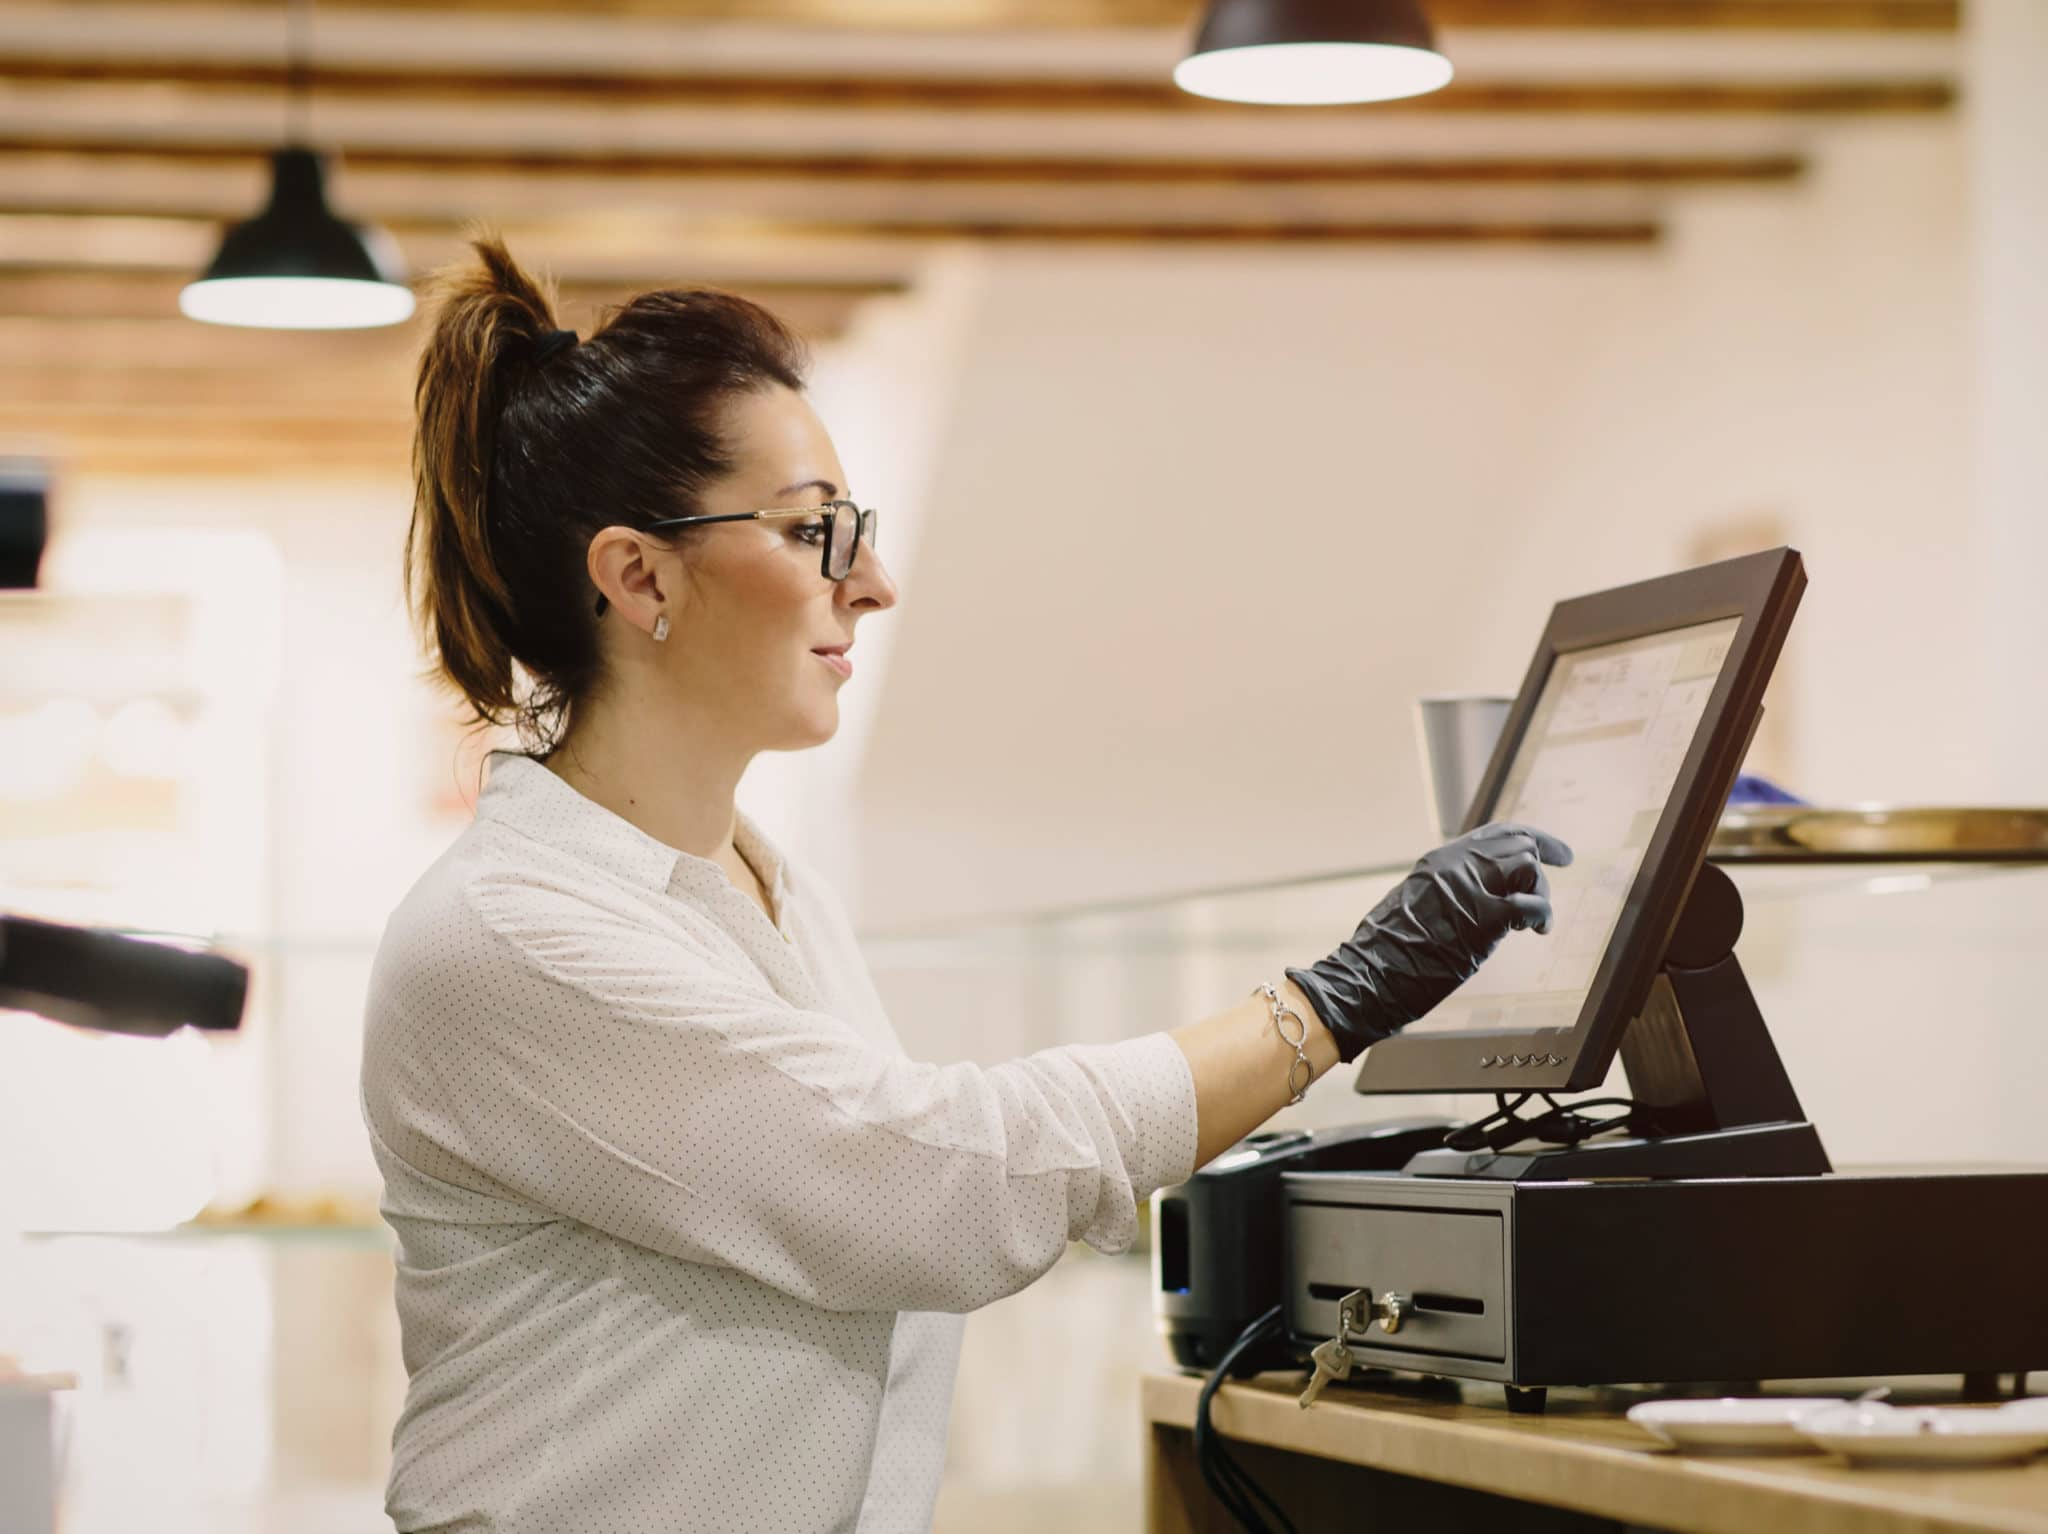 Woman wearing glasses pressing buttons on POS machine in cafeteria.